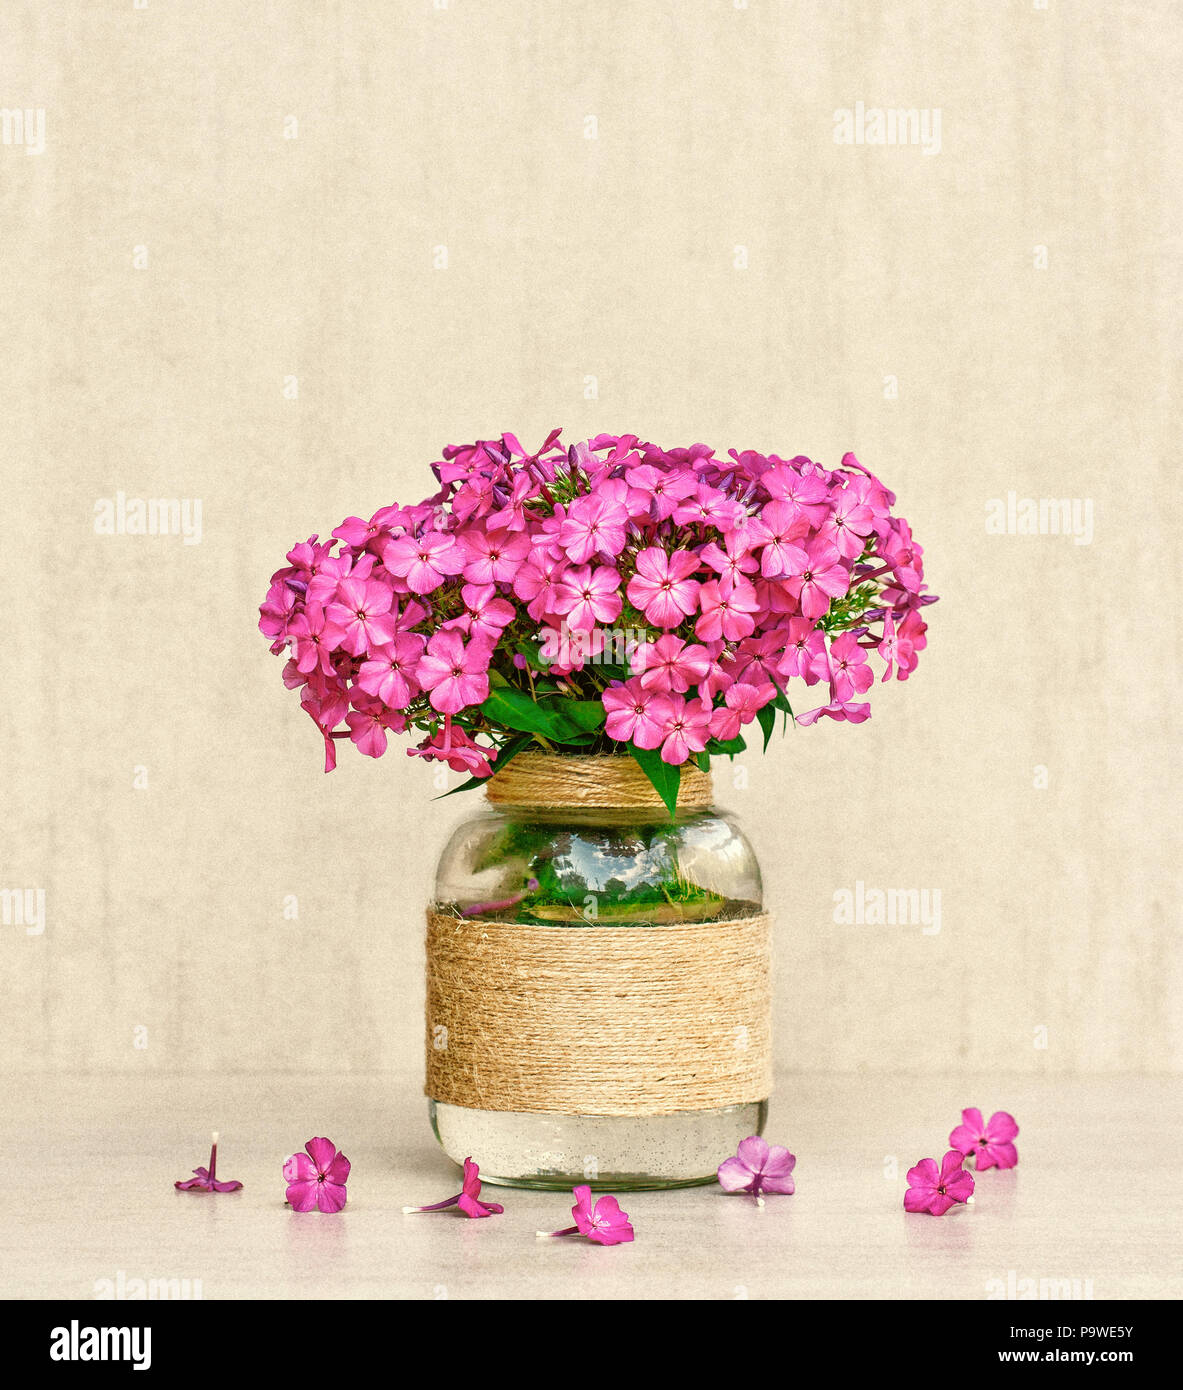 Flower Bouquet Of Phlox In Vase Homemade Closeup On Gray Background